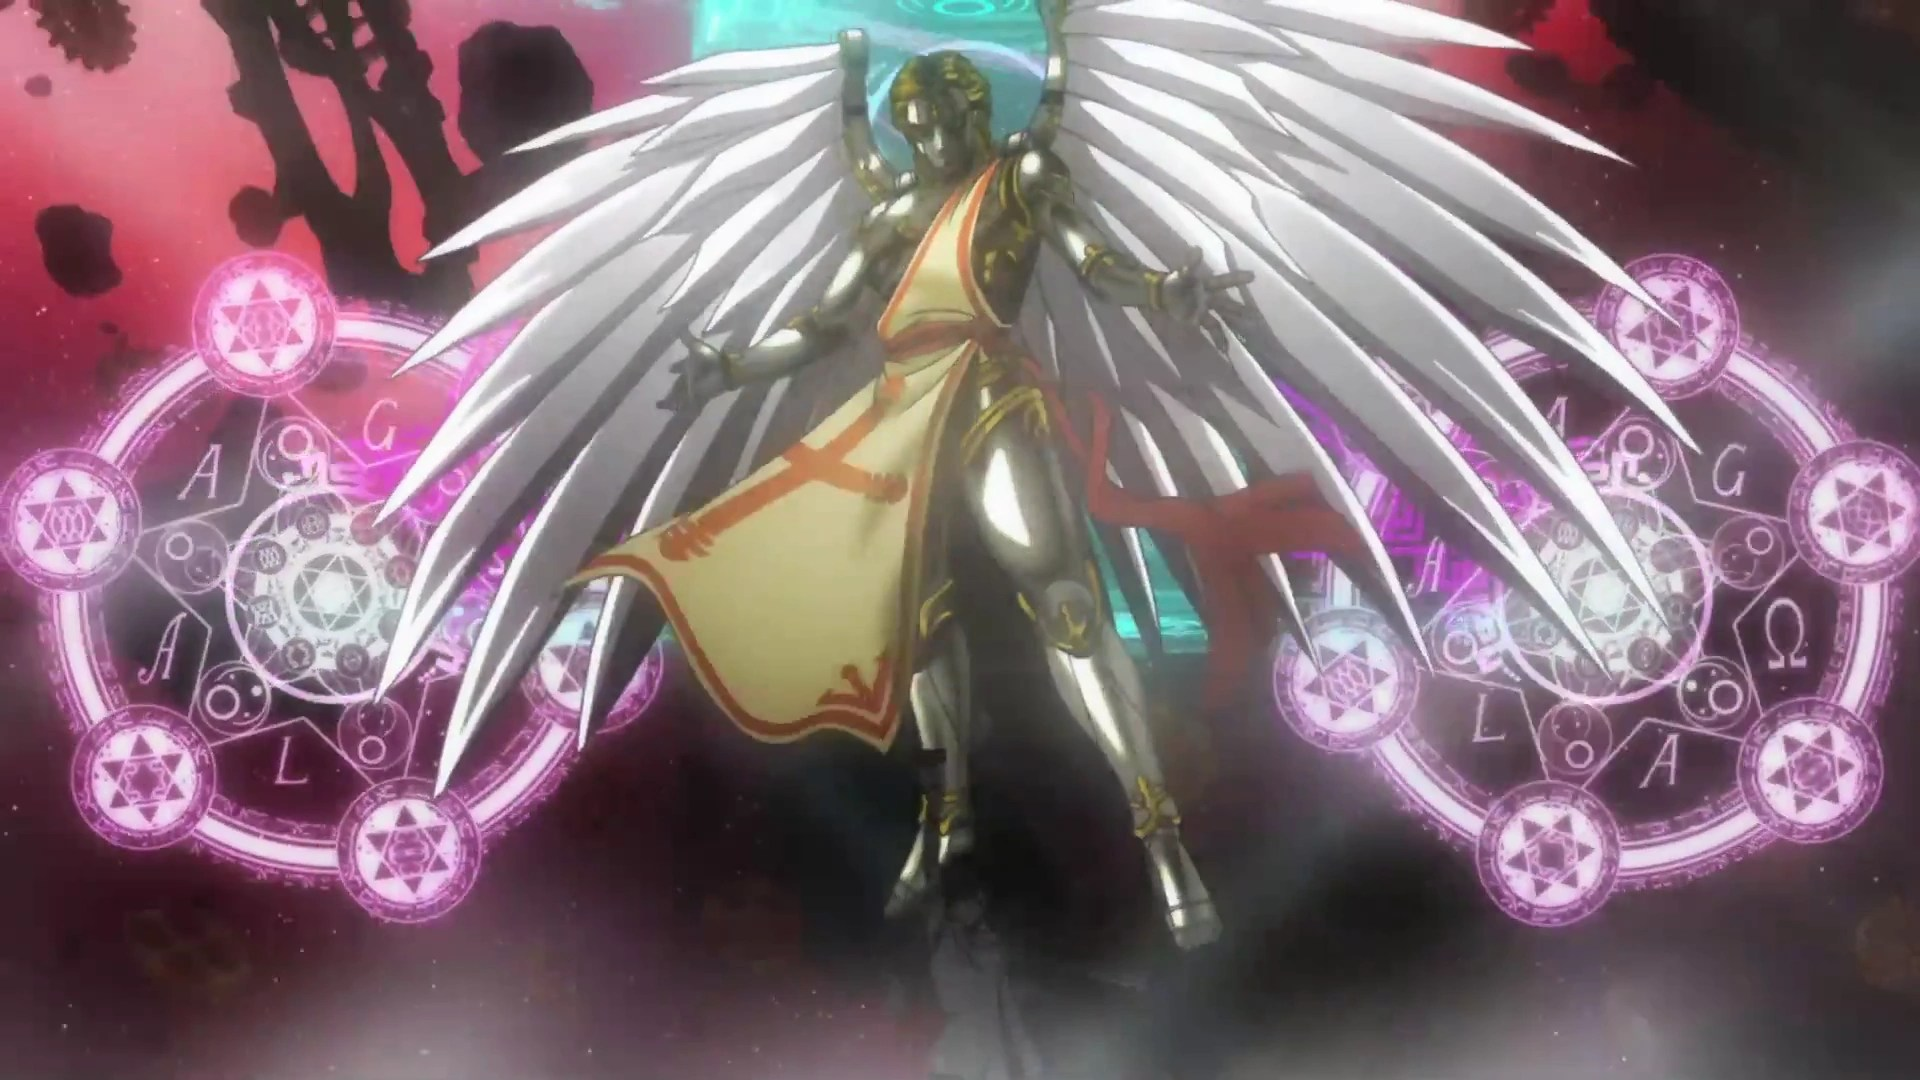 https://i1.wp.com/img1.wikia.nocookie.net/__cb20130628013708/megamitensei/images/3/37/Metatron_Devil_Survivor_2_The_Animation.png